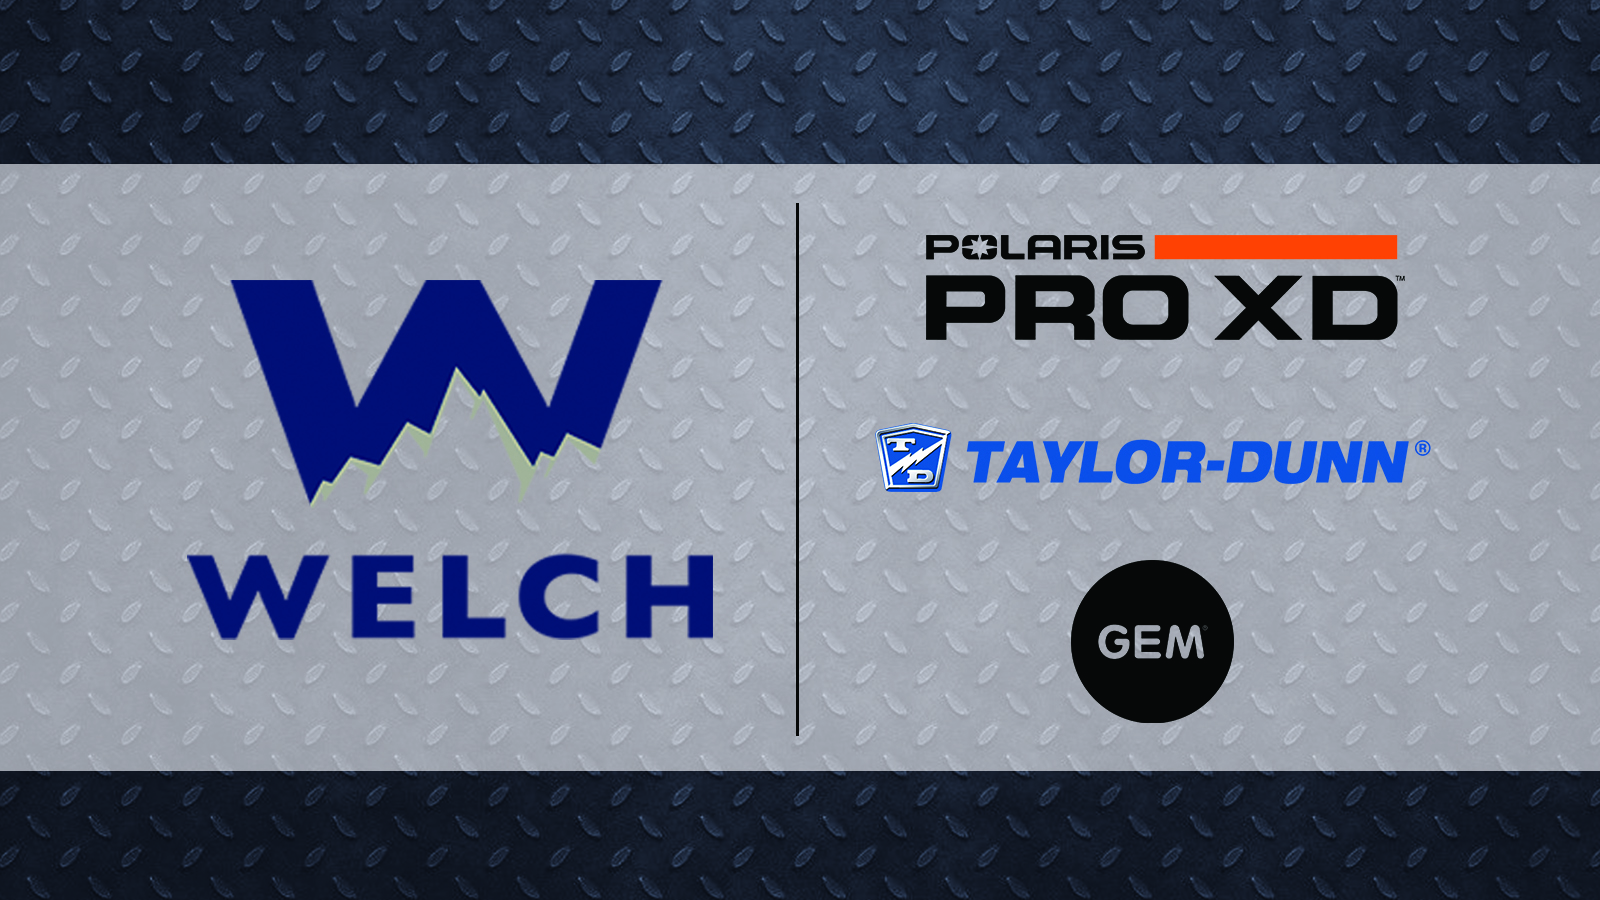 welch equipment polaris commercial dealer